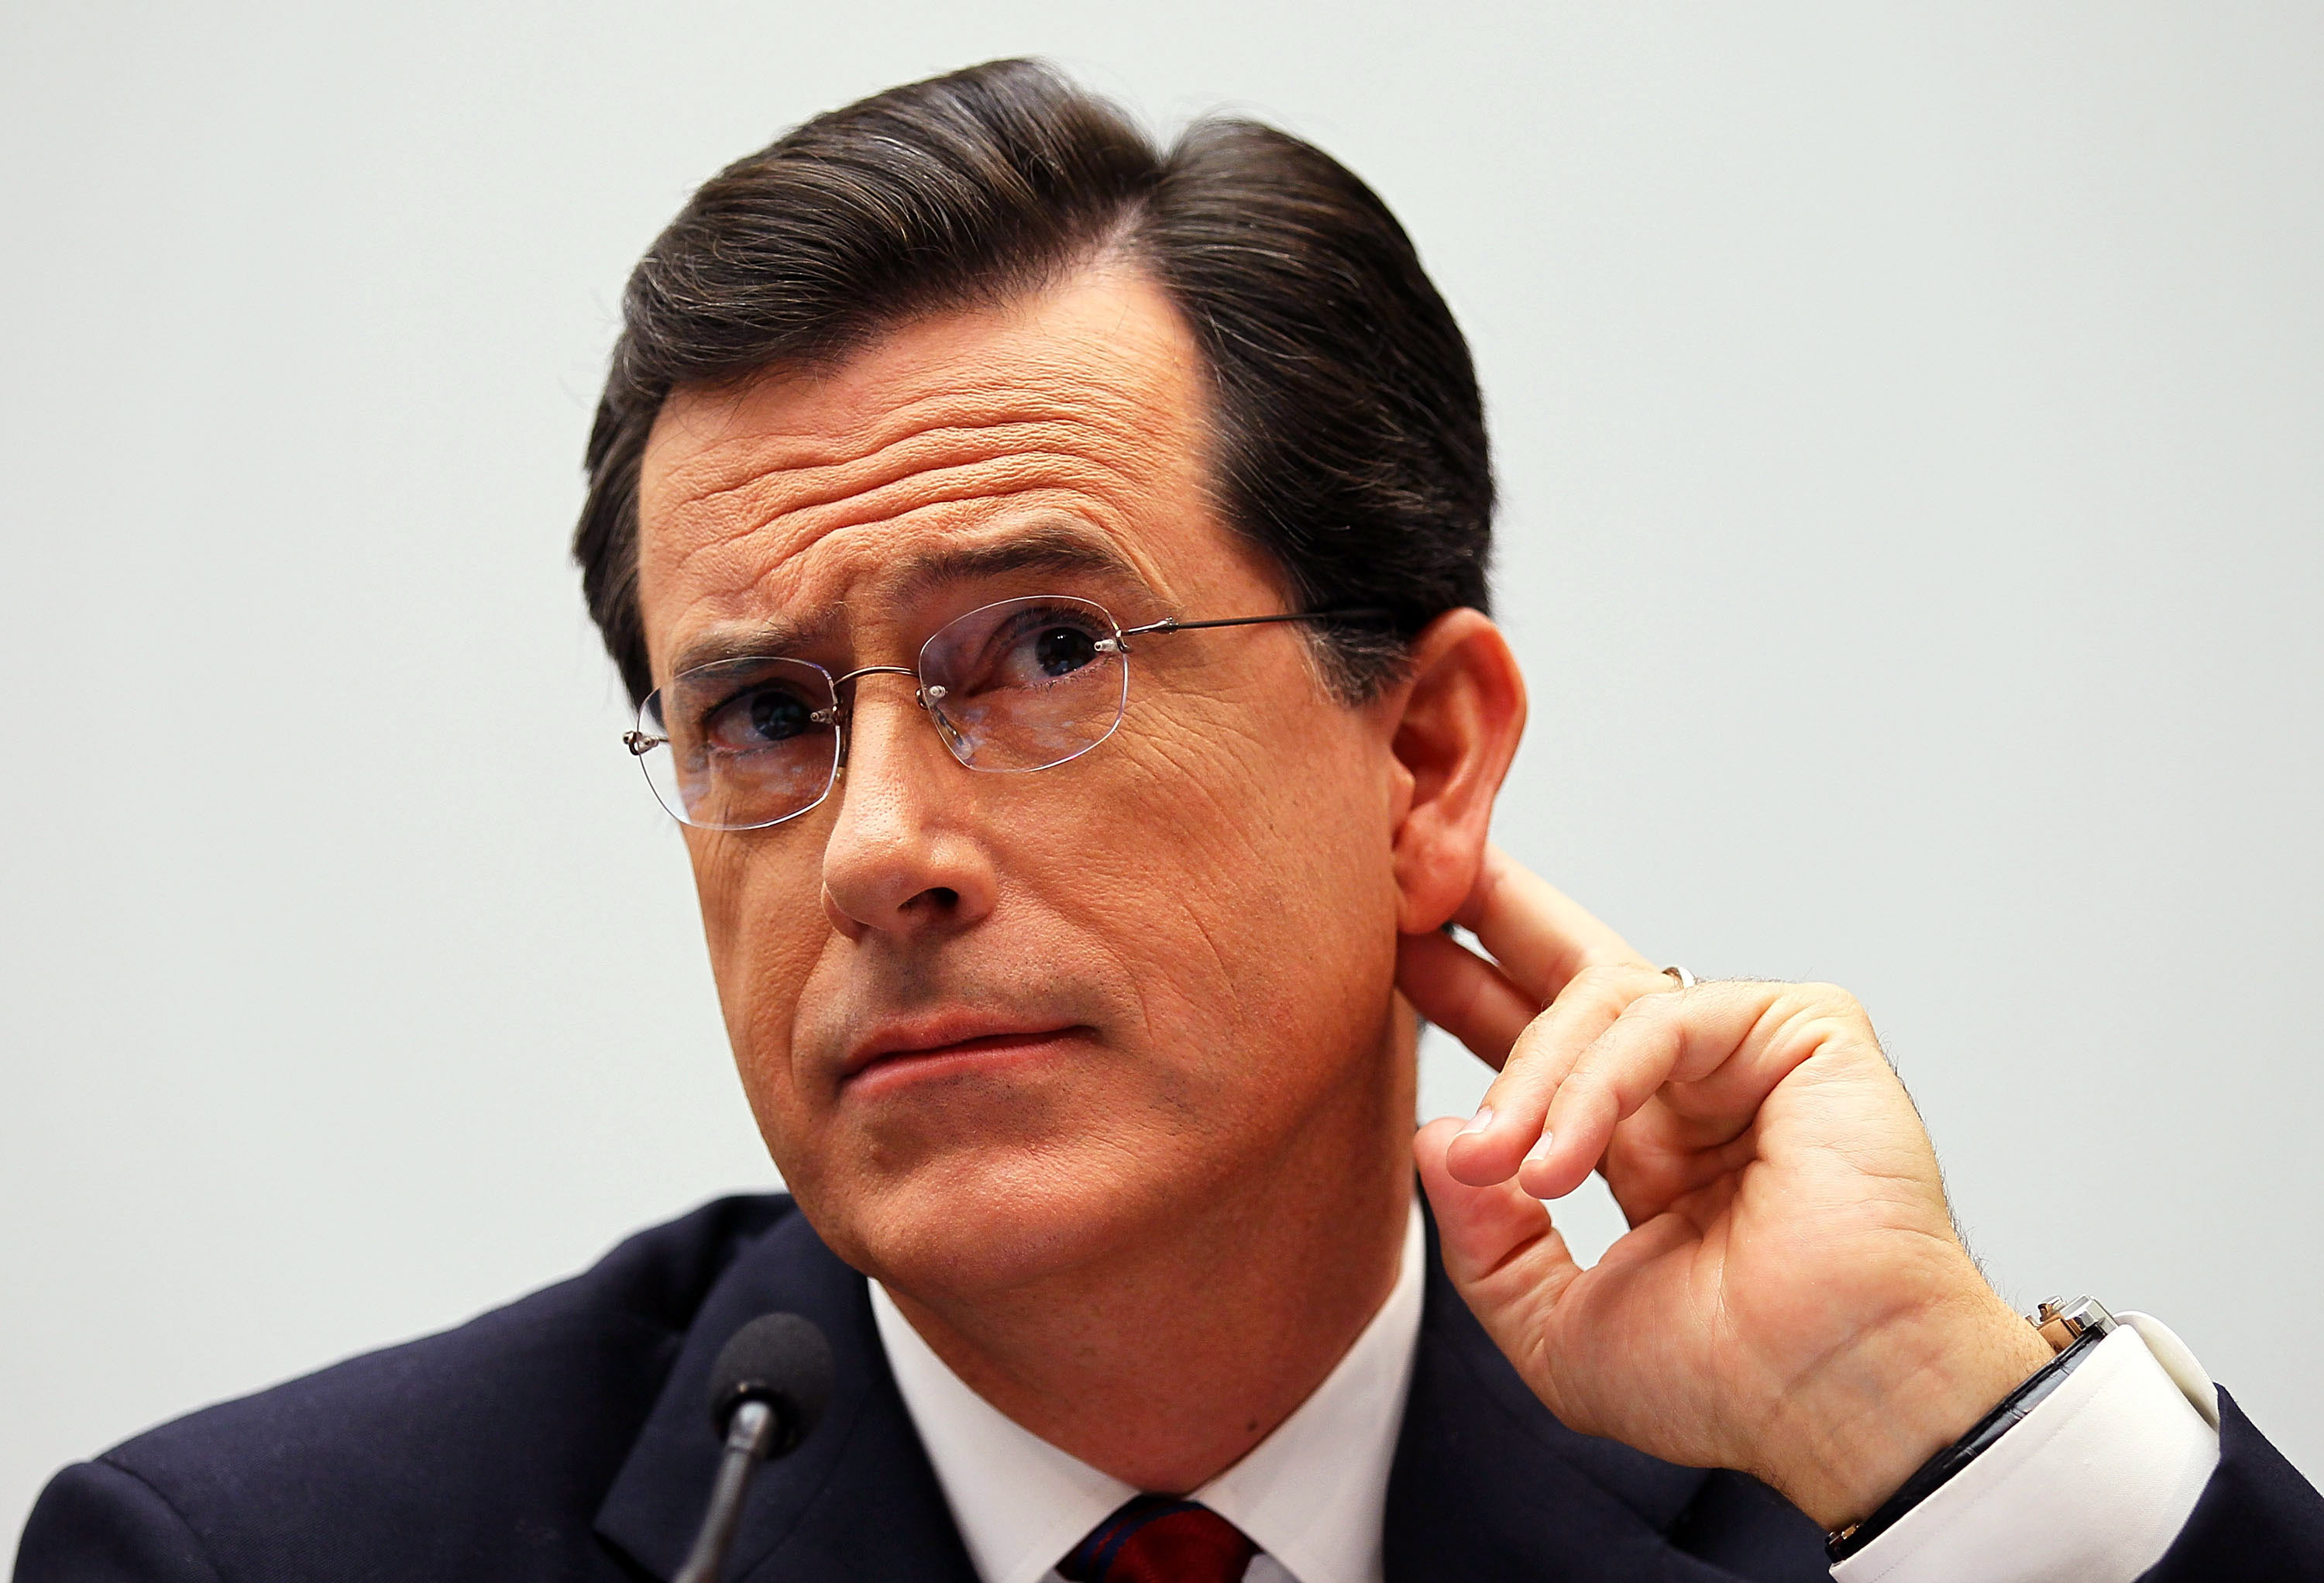 Stephen Colbert Wallpapers Images Photos Pictures Backgrounds Stephen Colbert